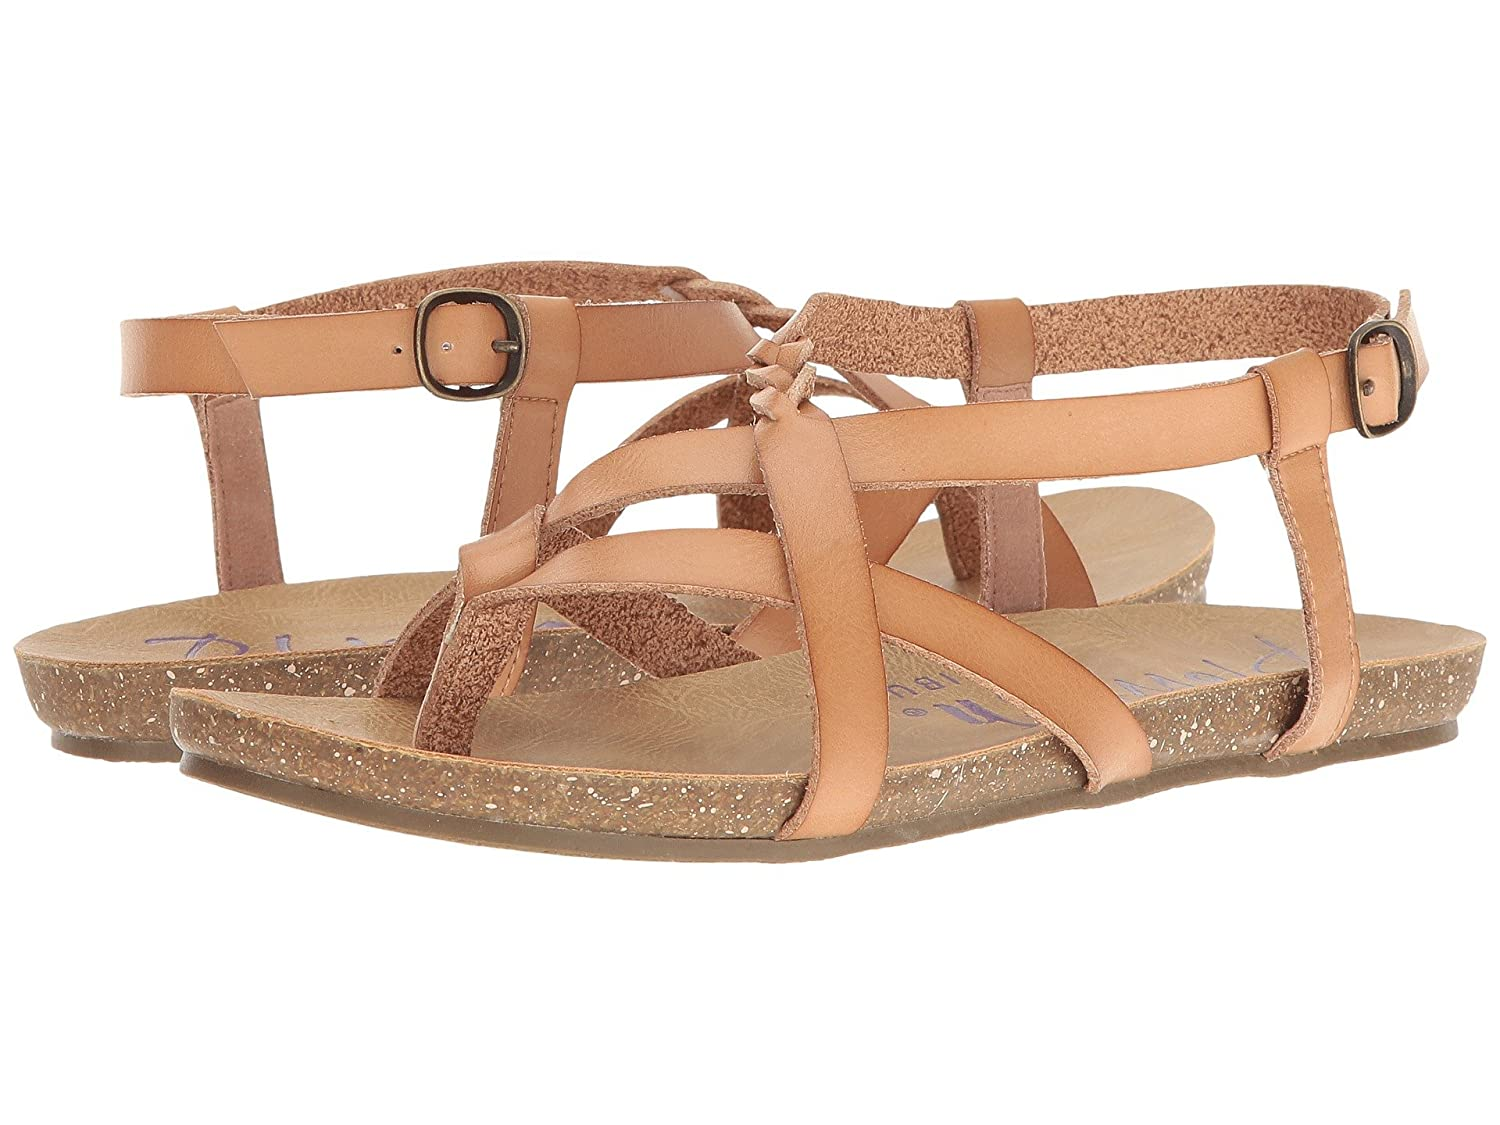 Blowfish Women's Granola Fisherman Sandal B07B44N69H 37-38 M EU / 7 B(M) US|Nude Dyecut